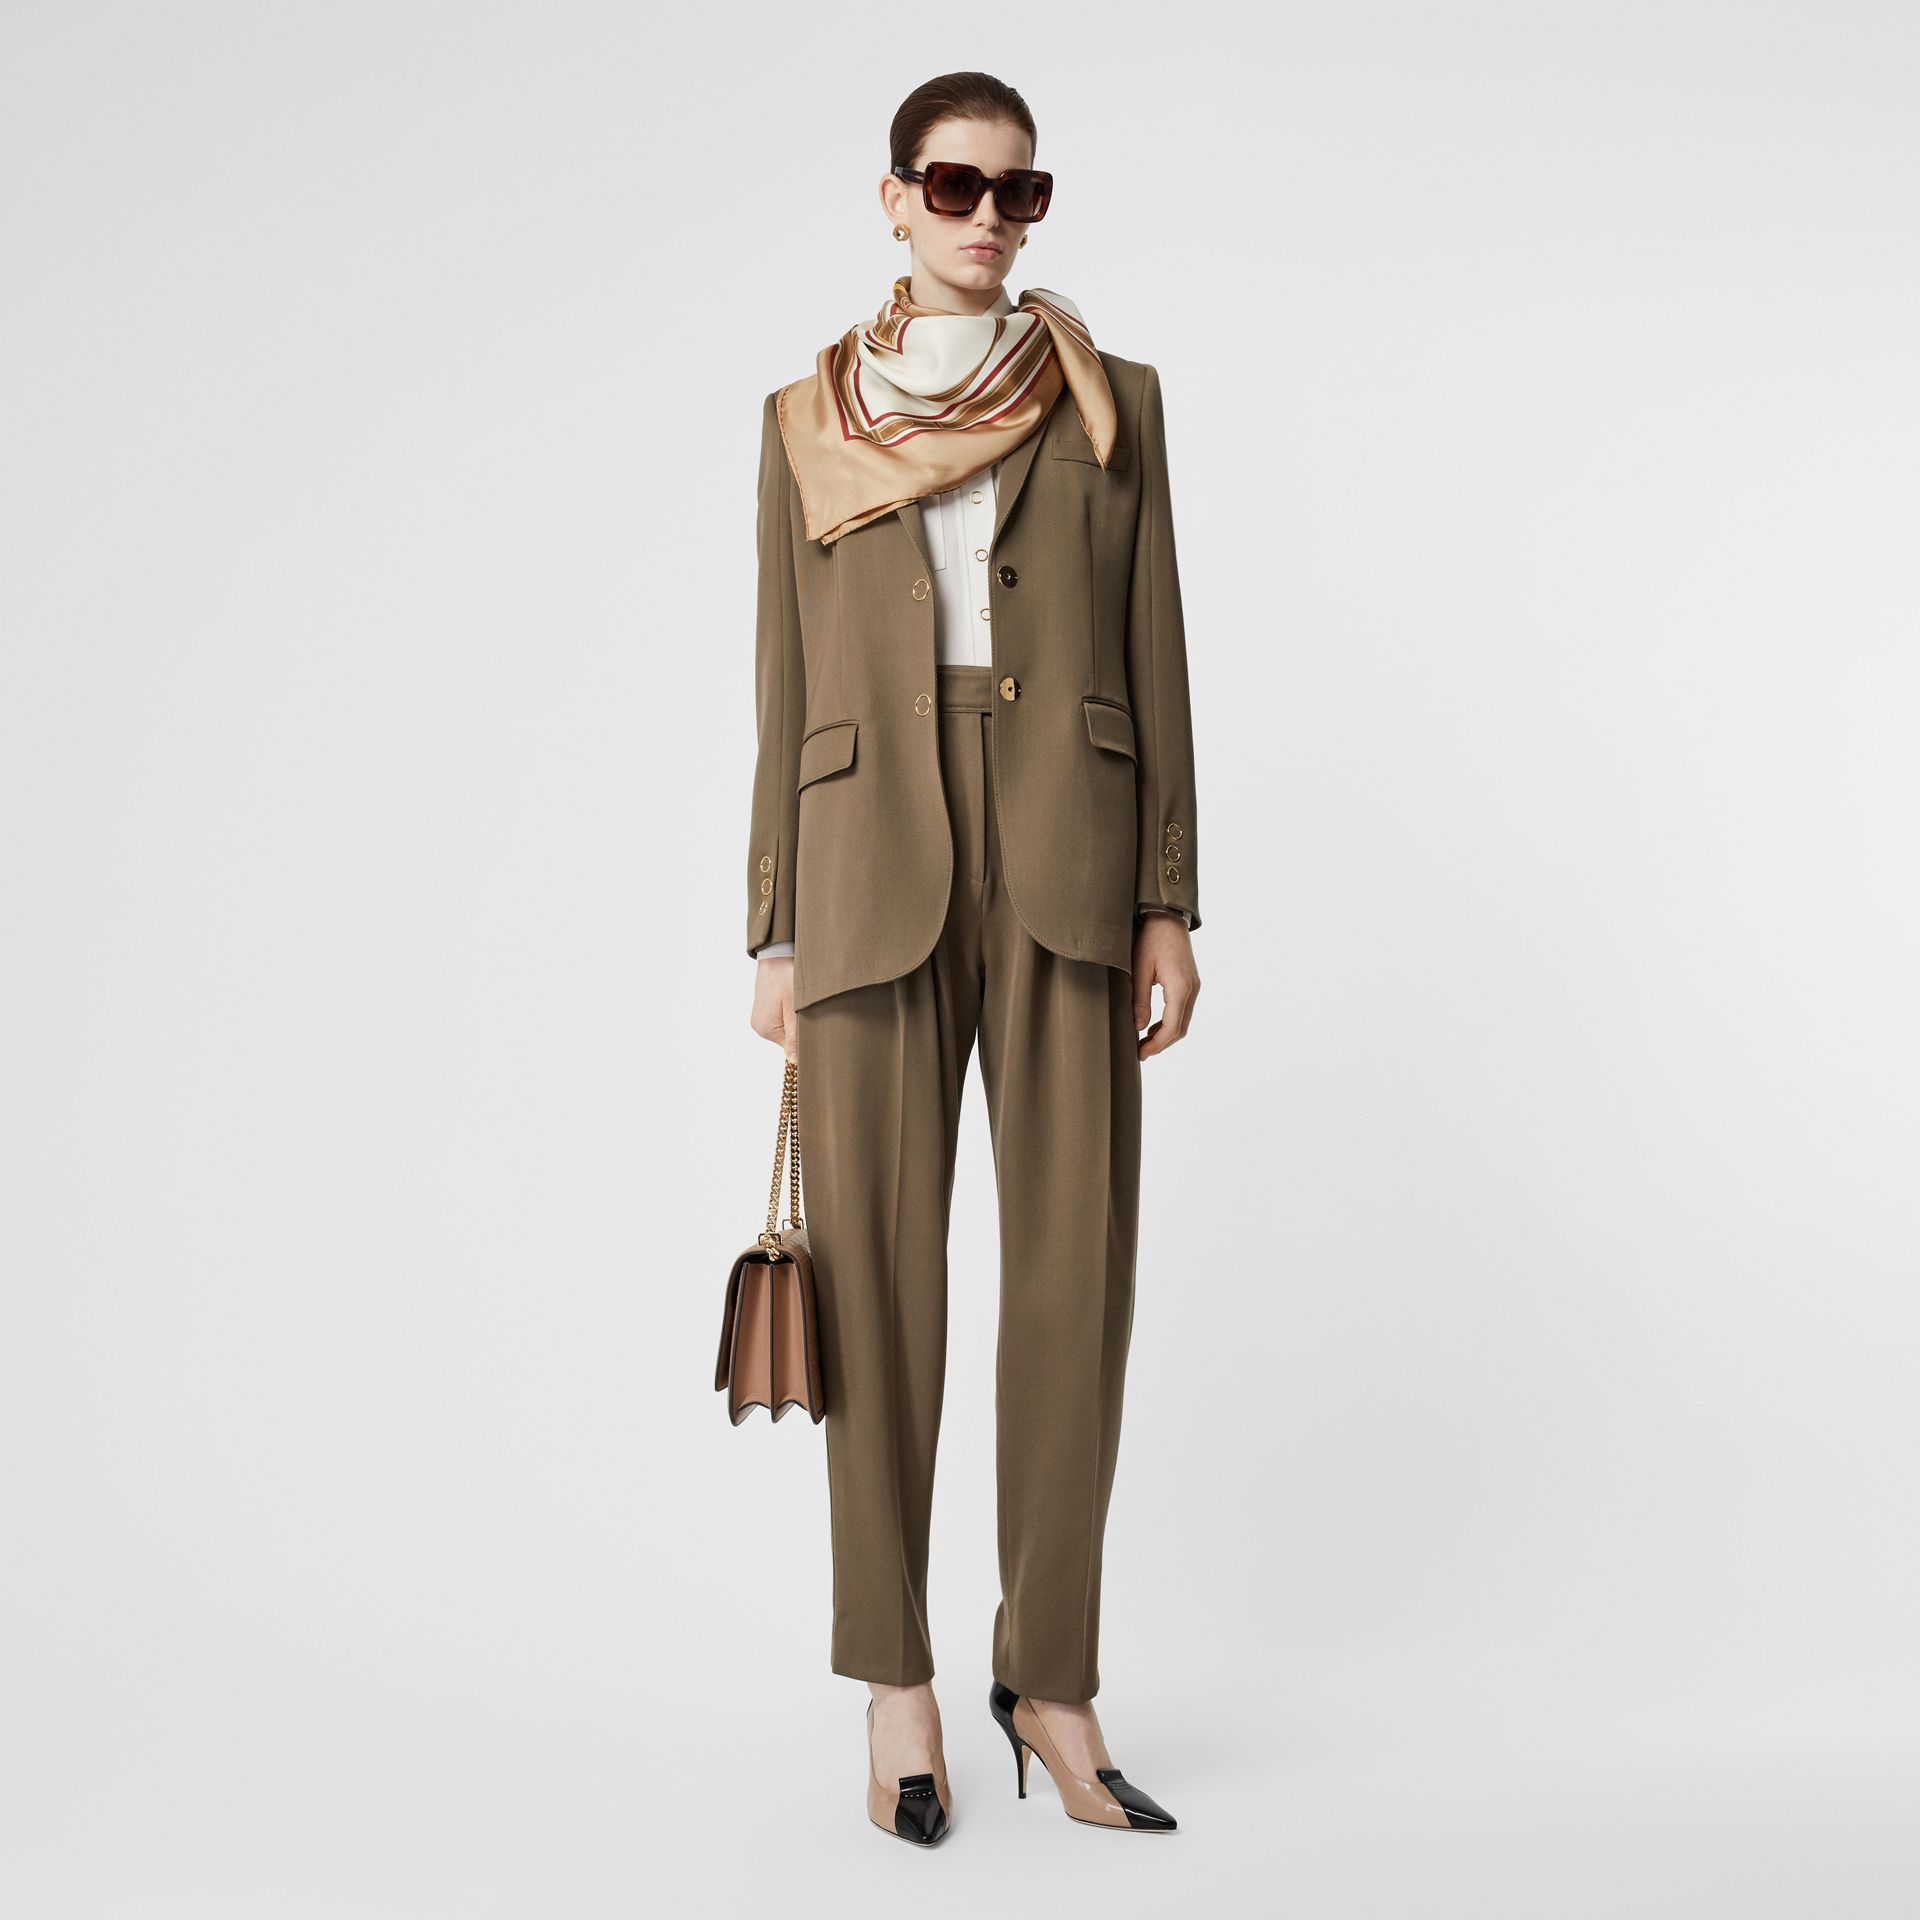 Archive Scarf Print Silk Square Scarf in Pale Camel | Burberry - gallery image 4